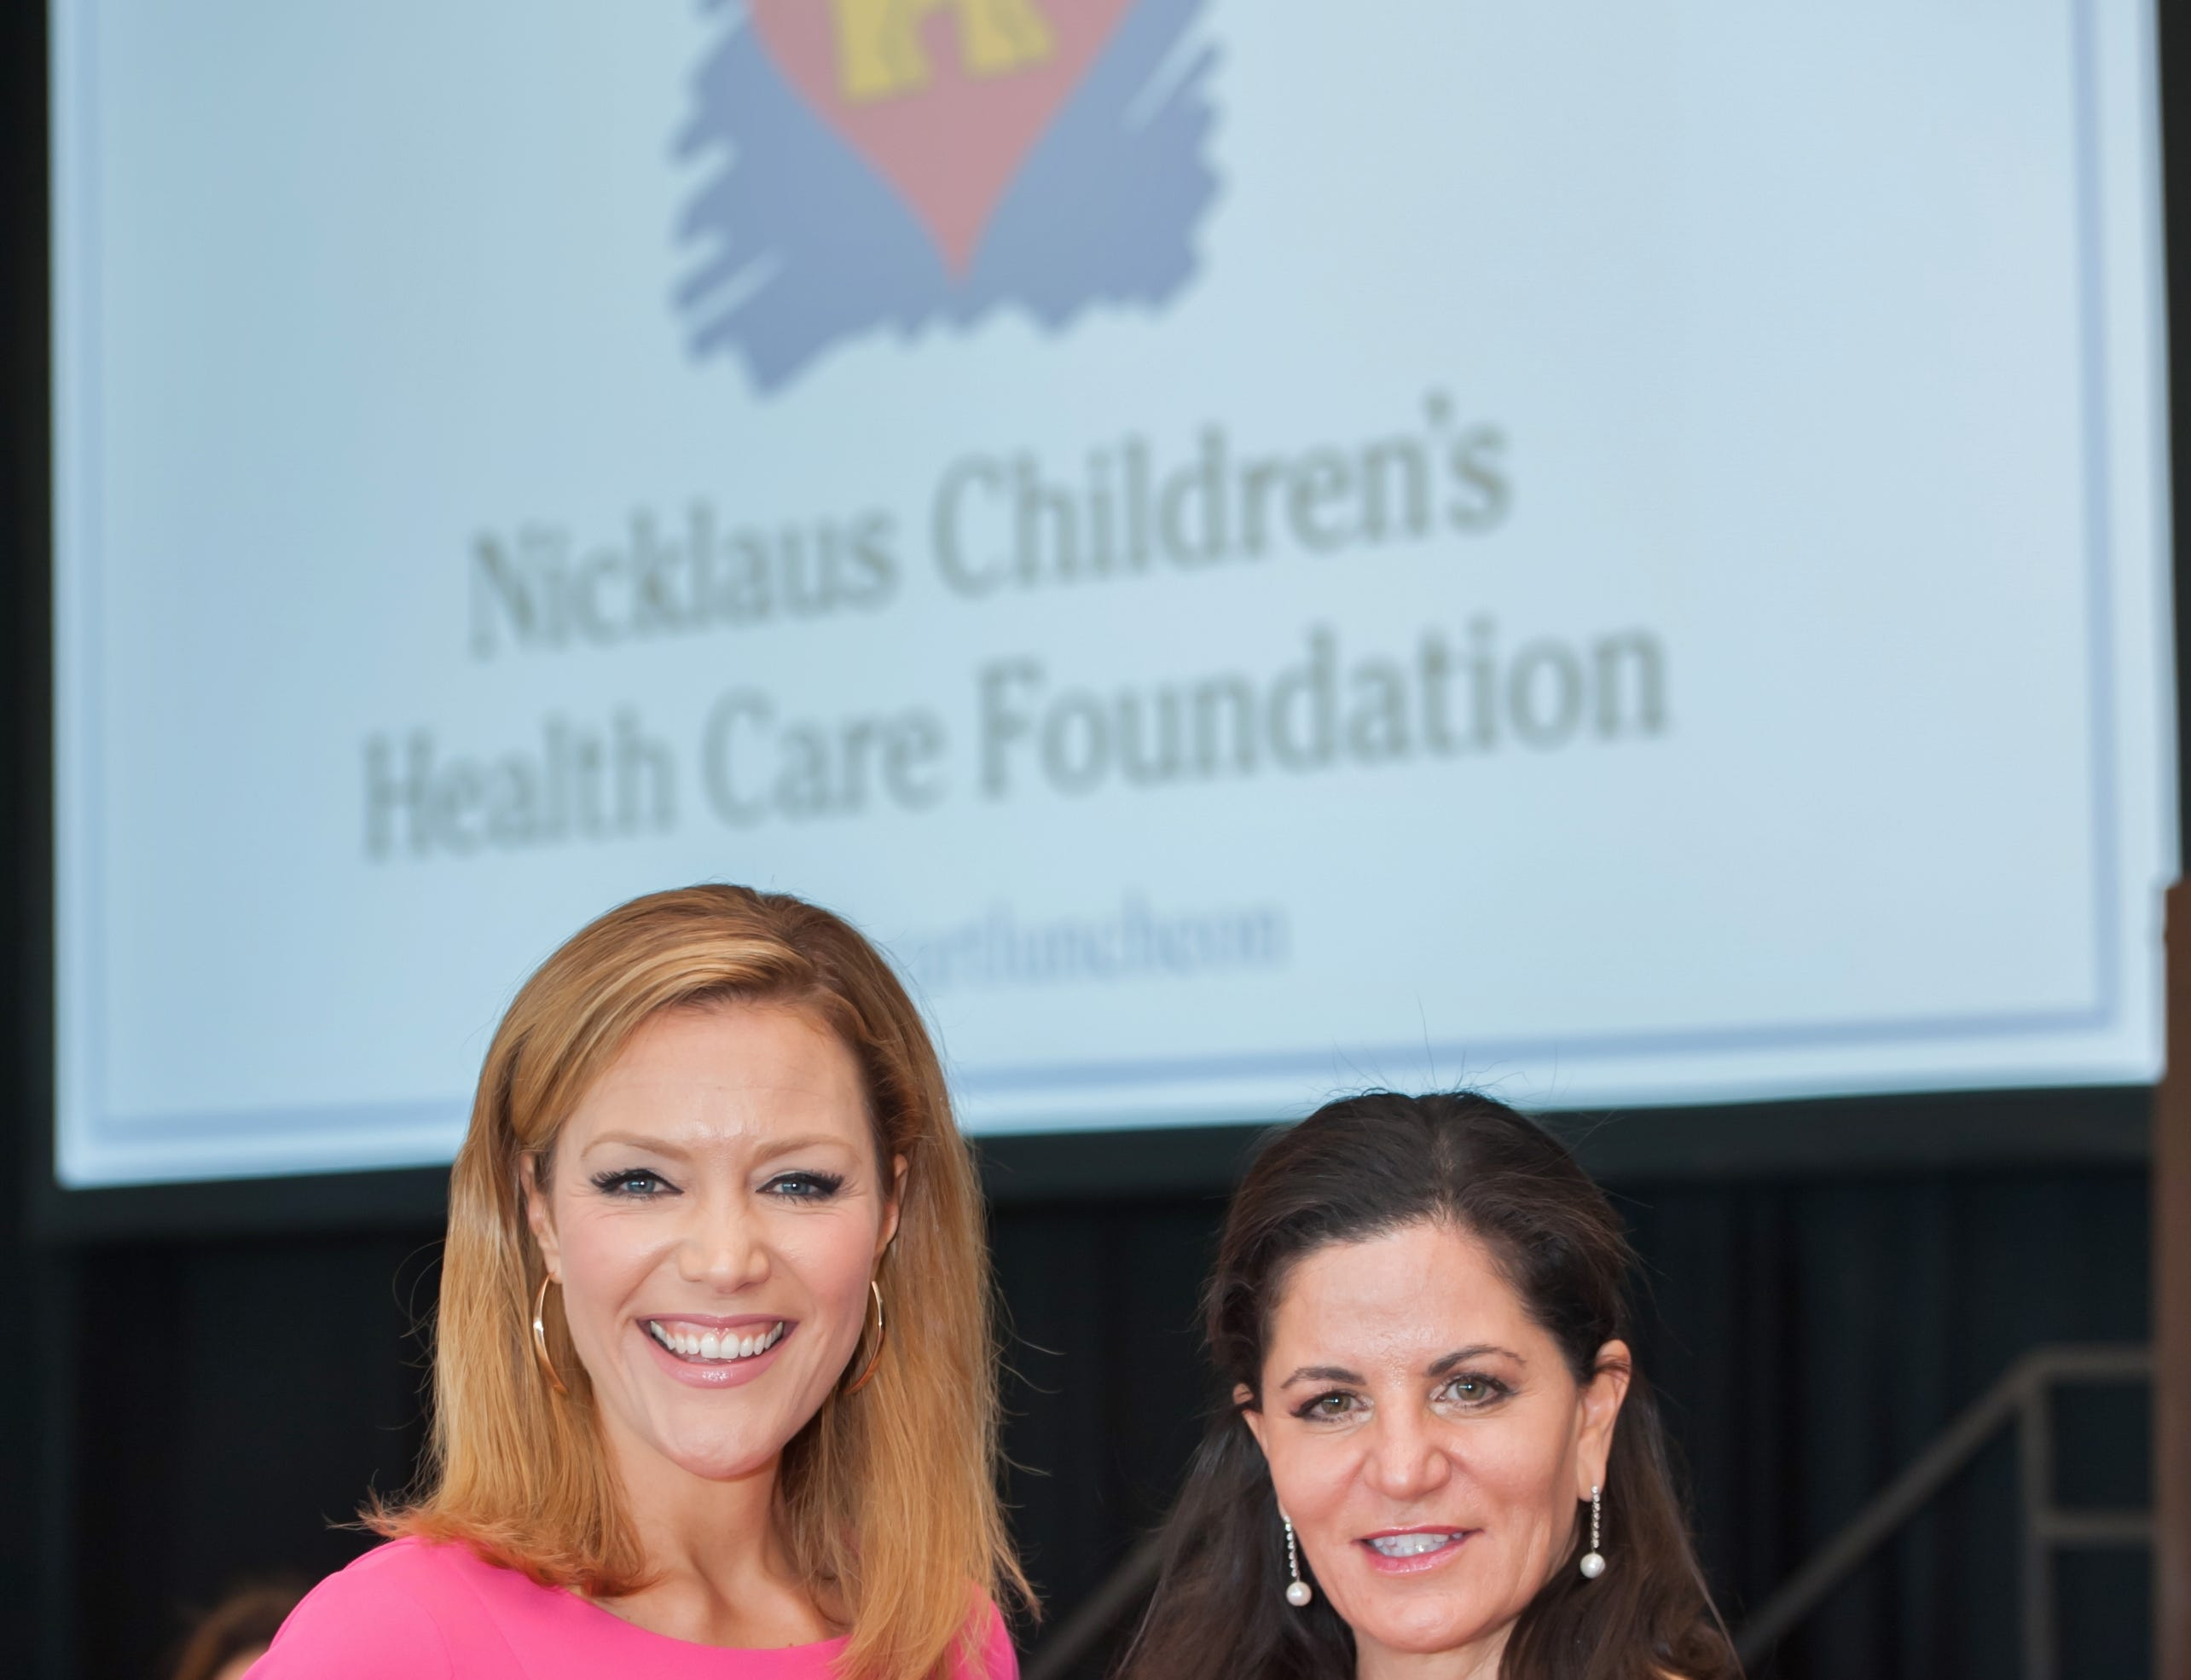 Shannon Cake and Dr. Kristine Guleserian at the Golden Heart Luncheon in Palm Beach Gardens.